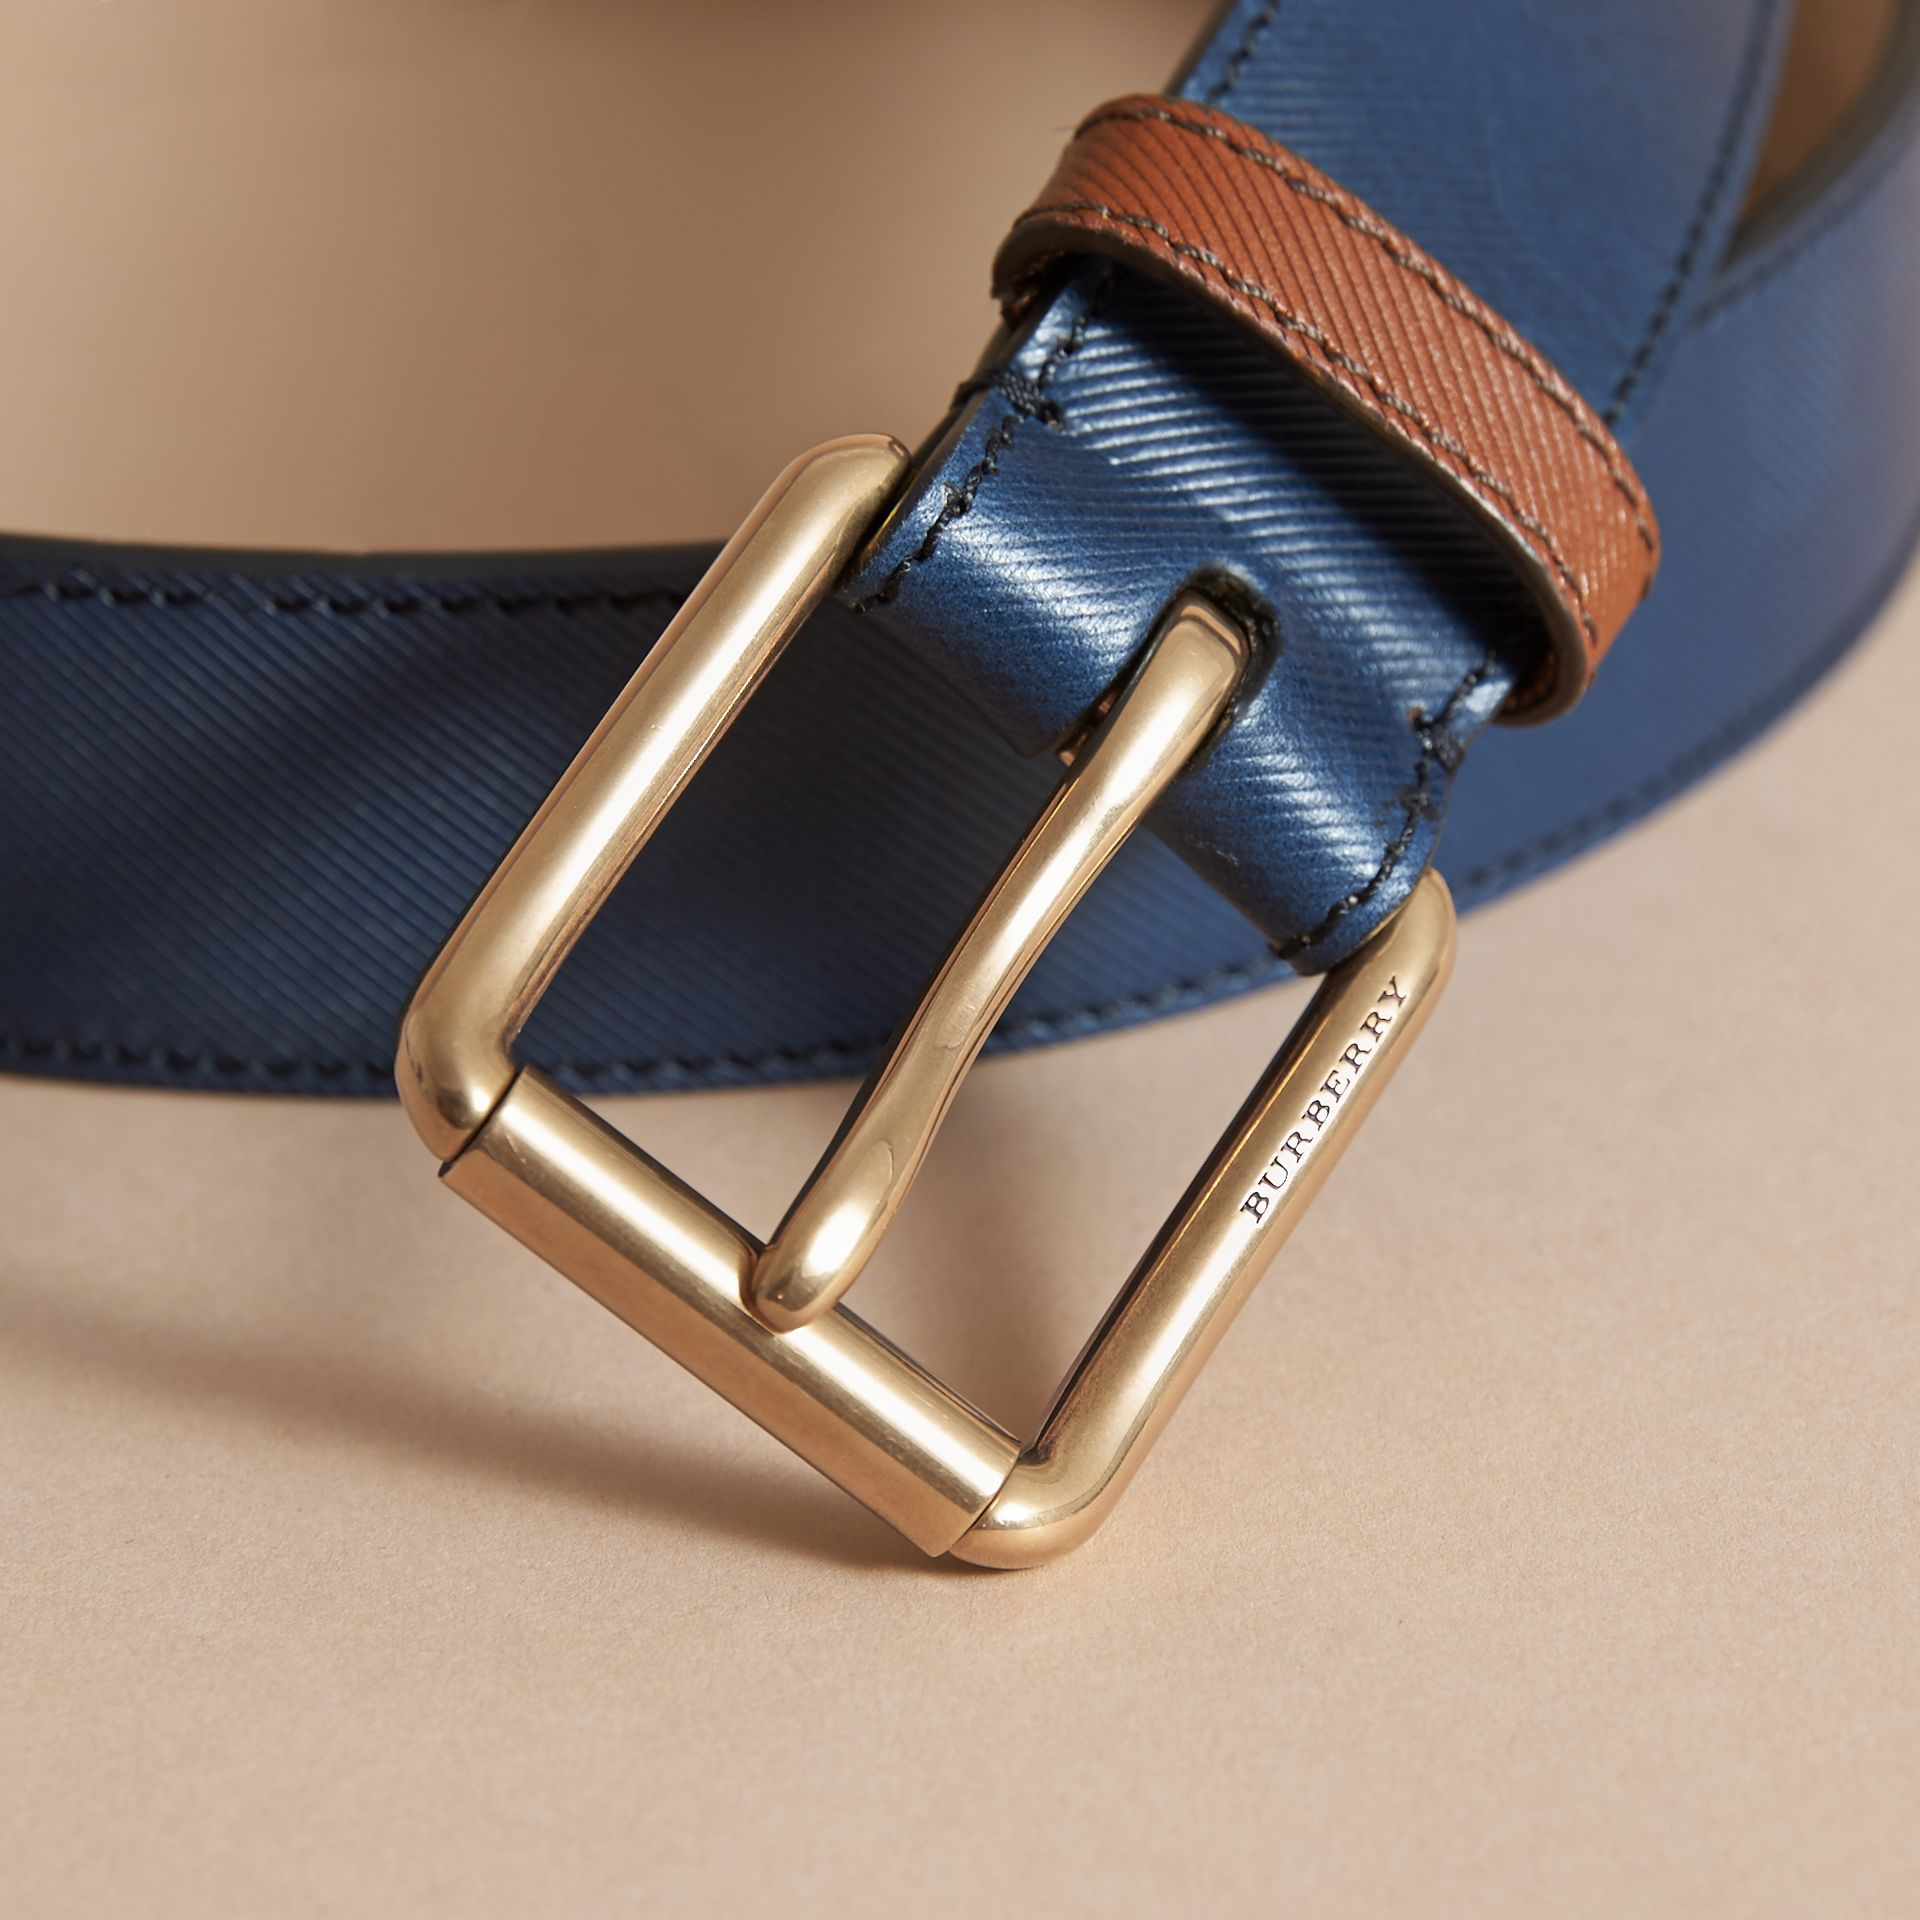 Two-tone Trench Leather Belt in Dark Navy - Men | Burberry - gallery image 2